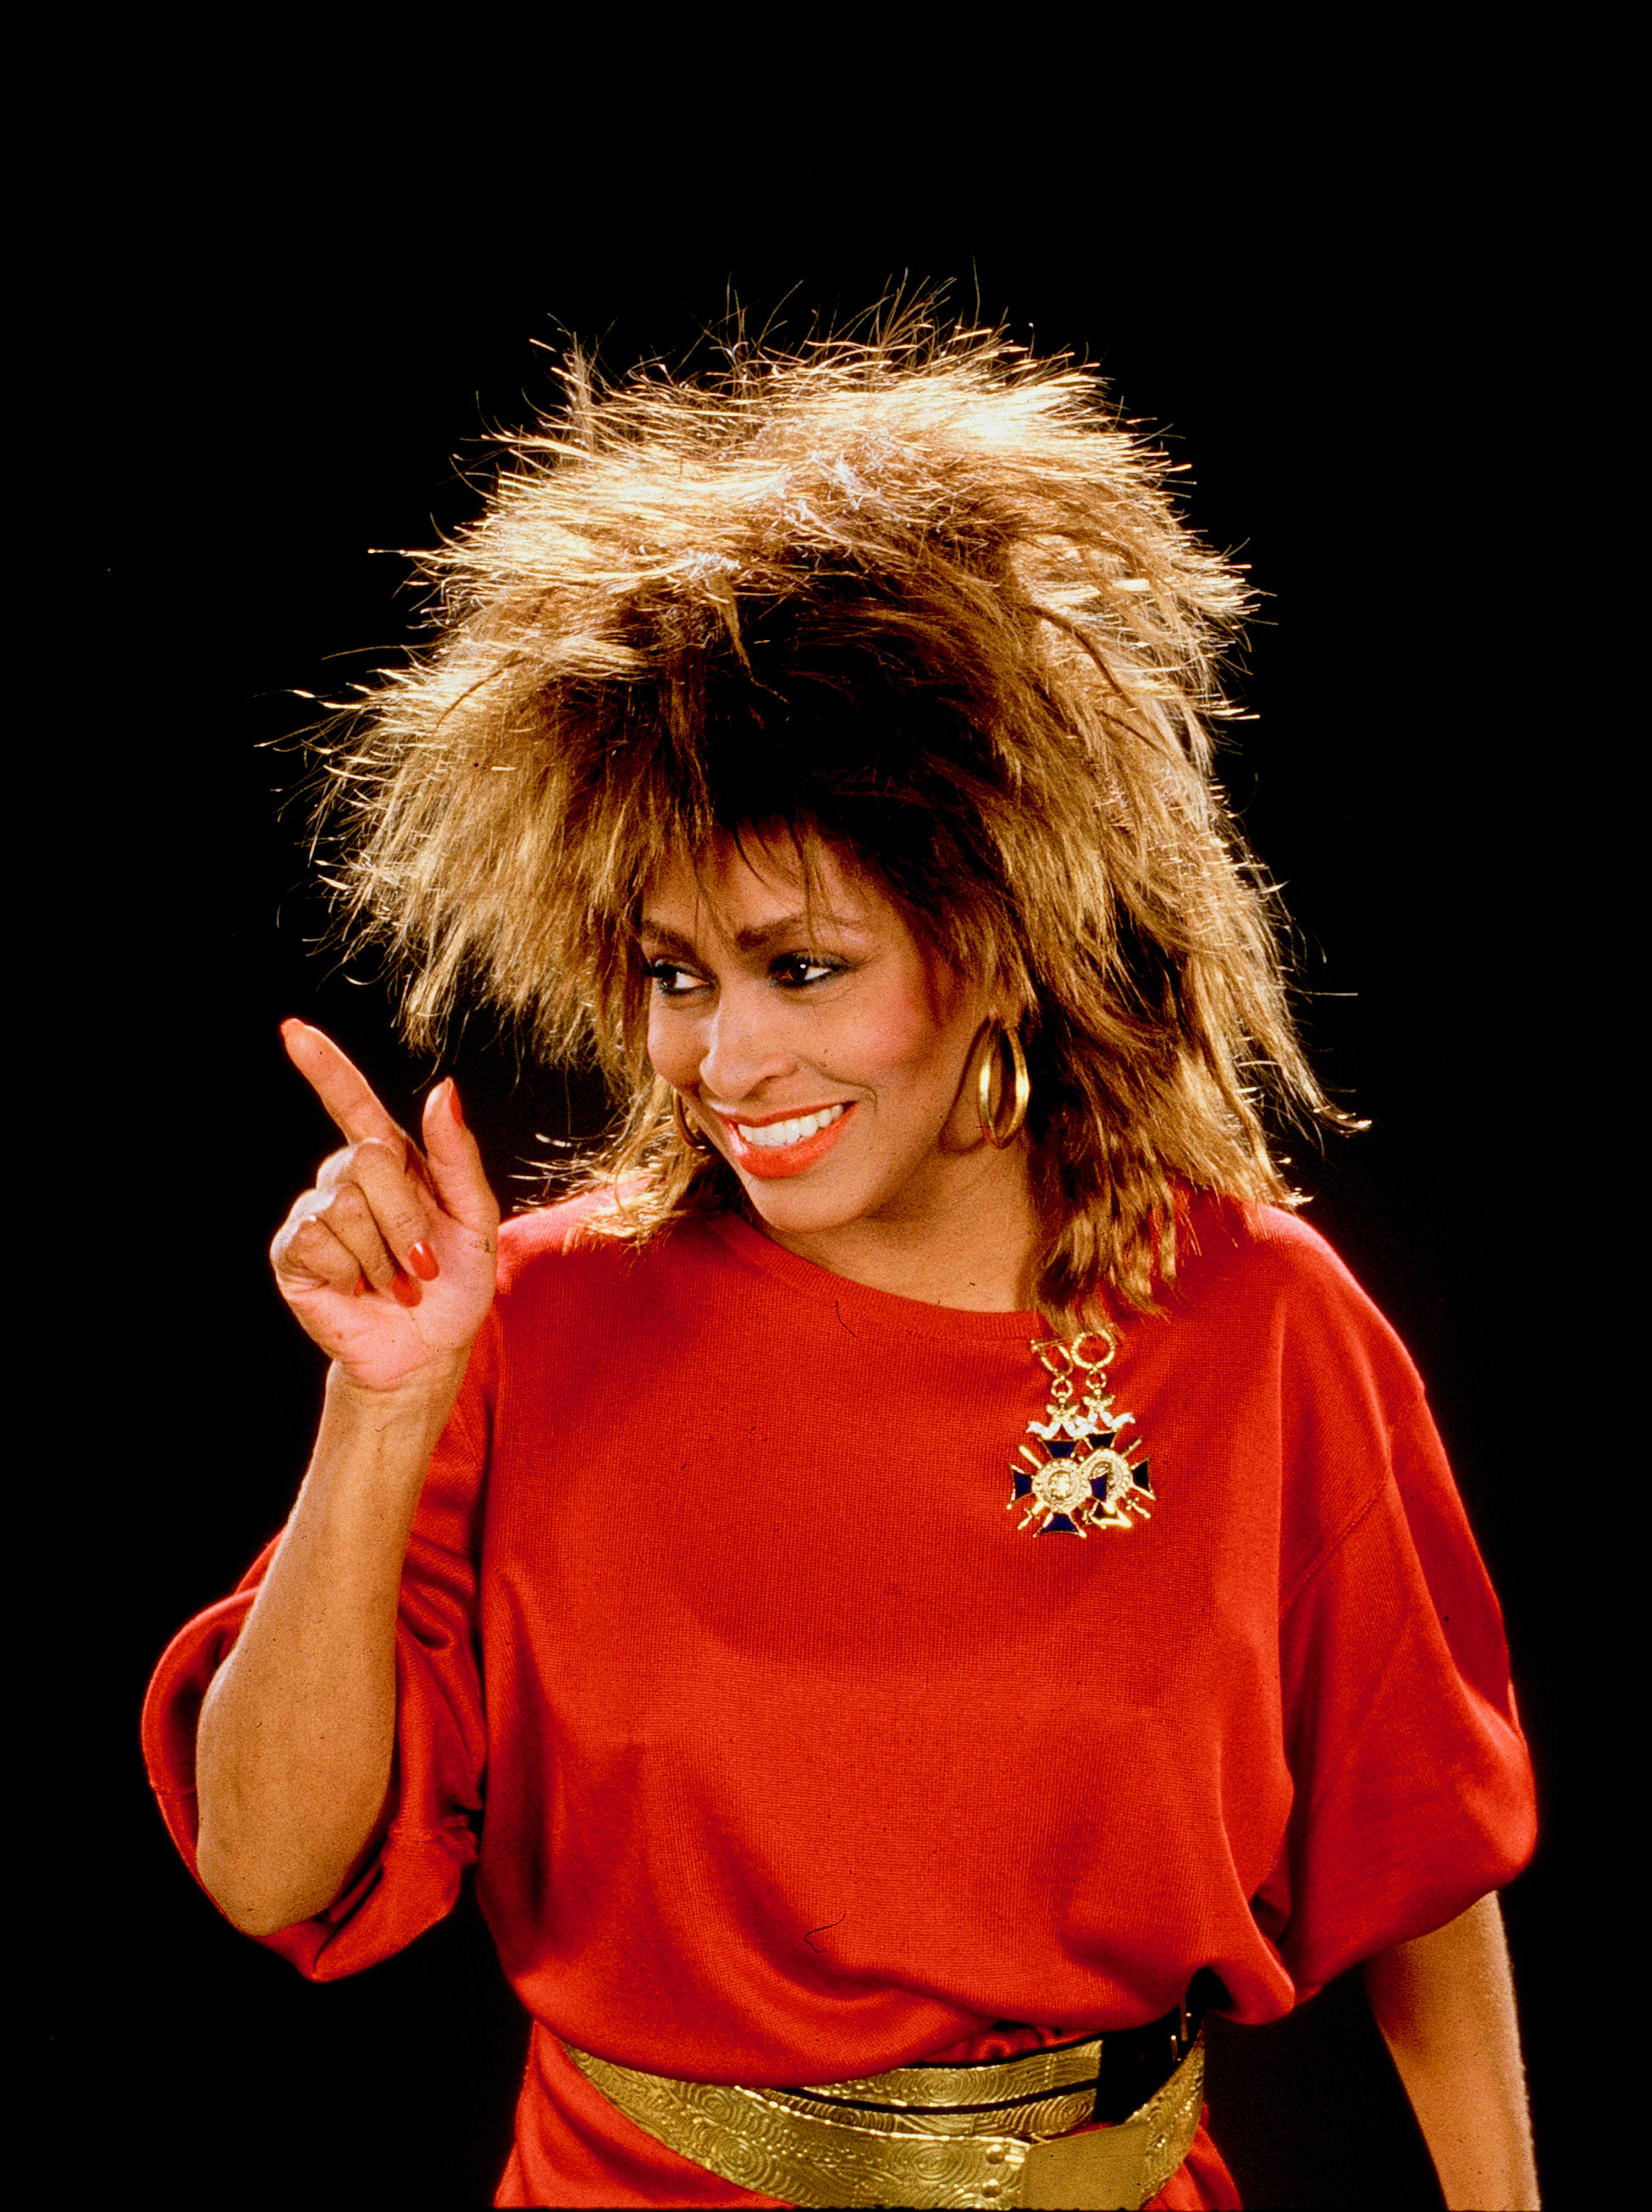 Tina Turner posing in red dress 1985